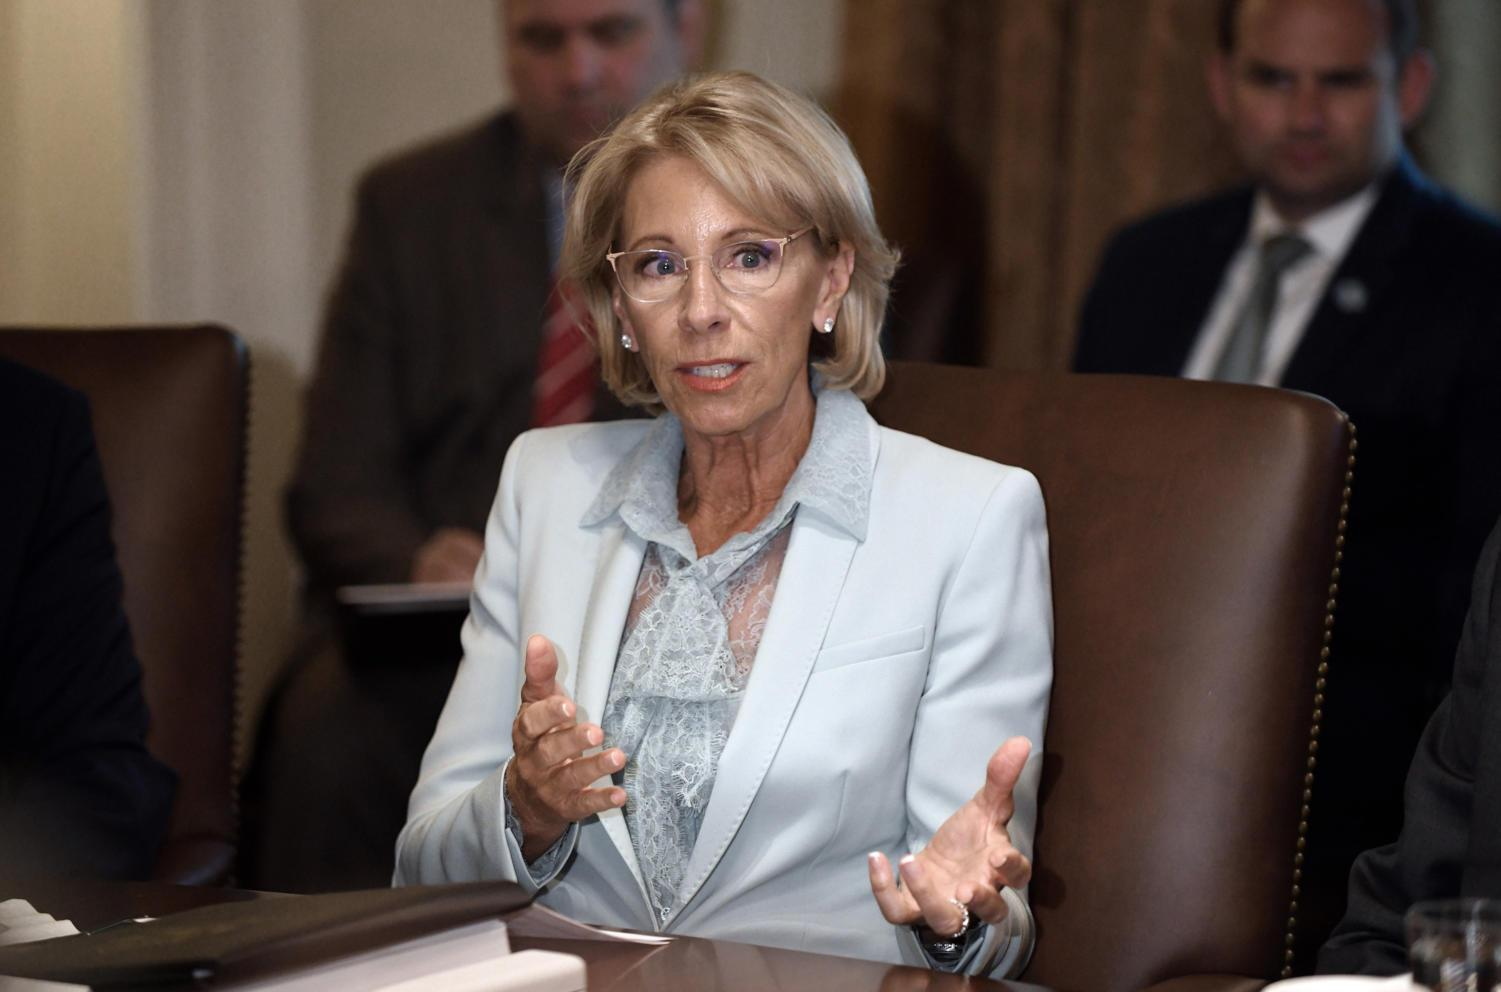 Secretary of Education Betsy DeVos speaks during a Cabinet meeting in the Cabinet Room of the White House on Wednesday, July 18, 2018 in Washington, D.C. (Olivier Douliery/Abaca Press/TNS)